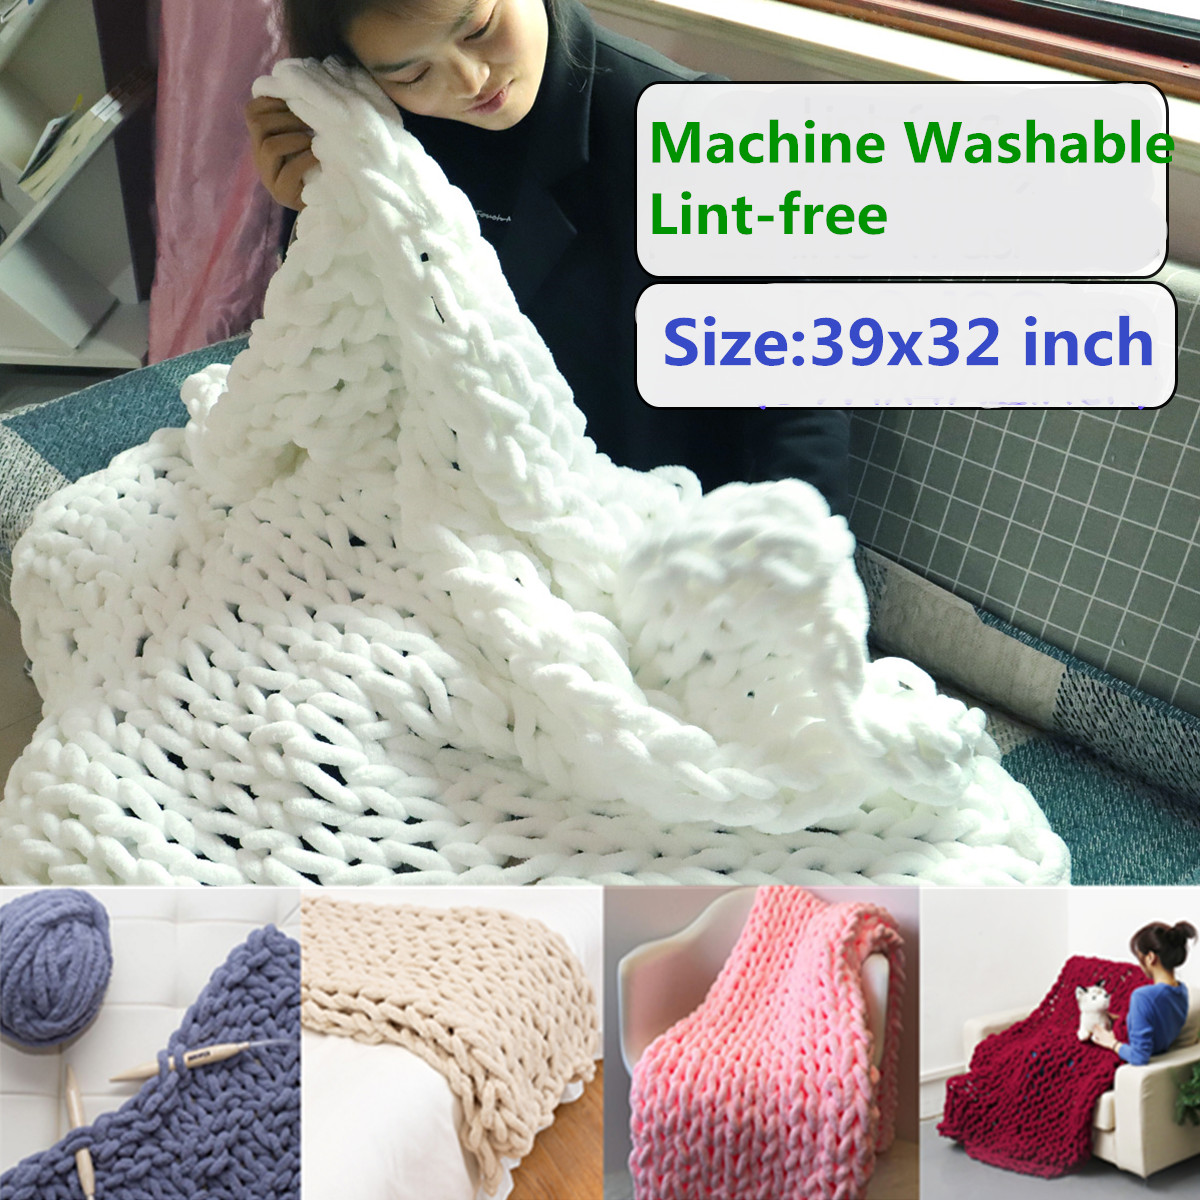 Sofa Throws Knitted 39x32 Inch Washable Hand Chunky Knitted Bed Blanket Lint Free Thick Bulky Knitting Sofa Throw Rug Child Play Mat